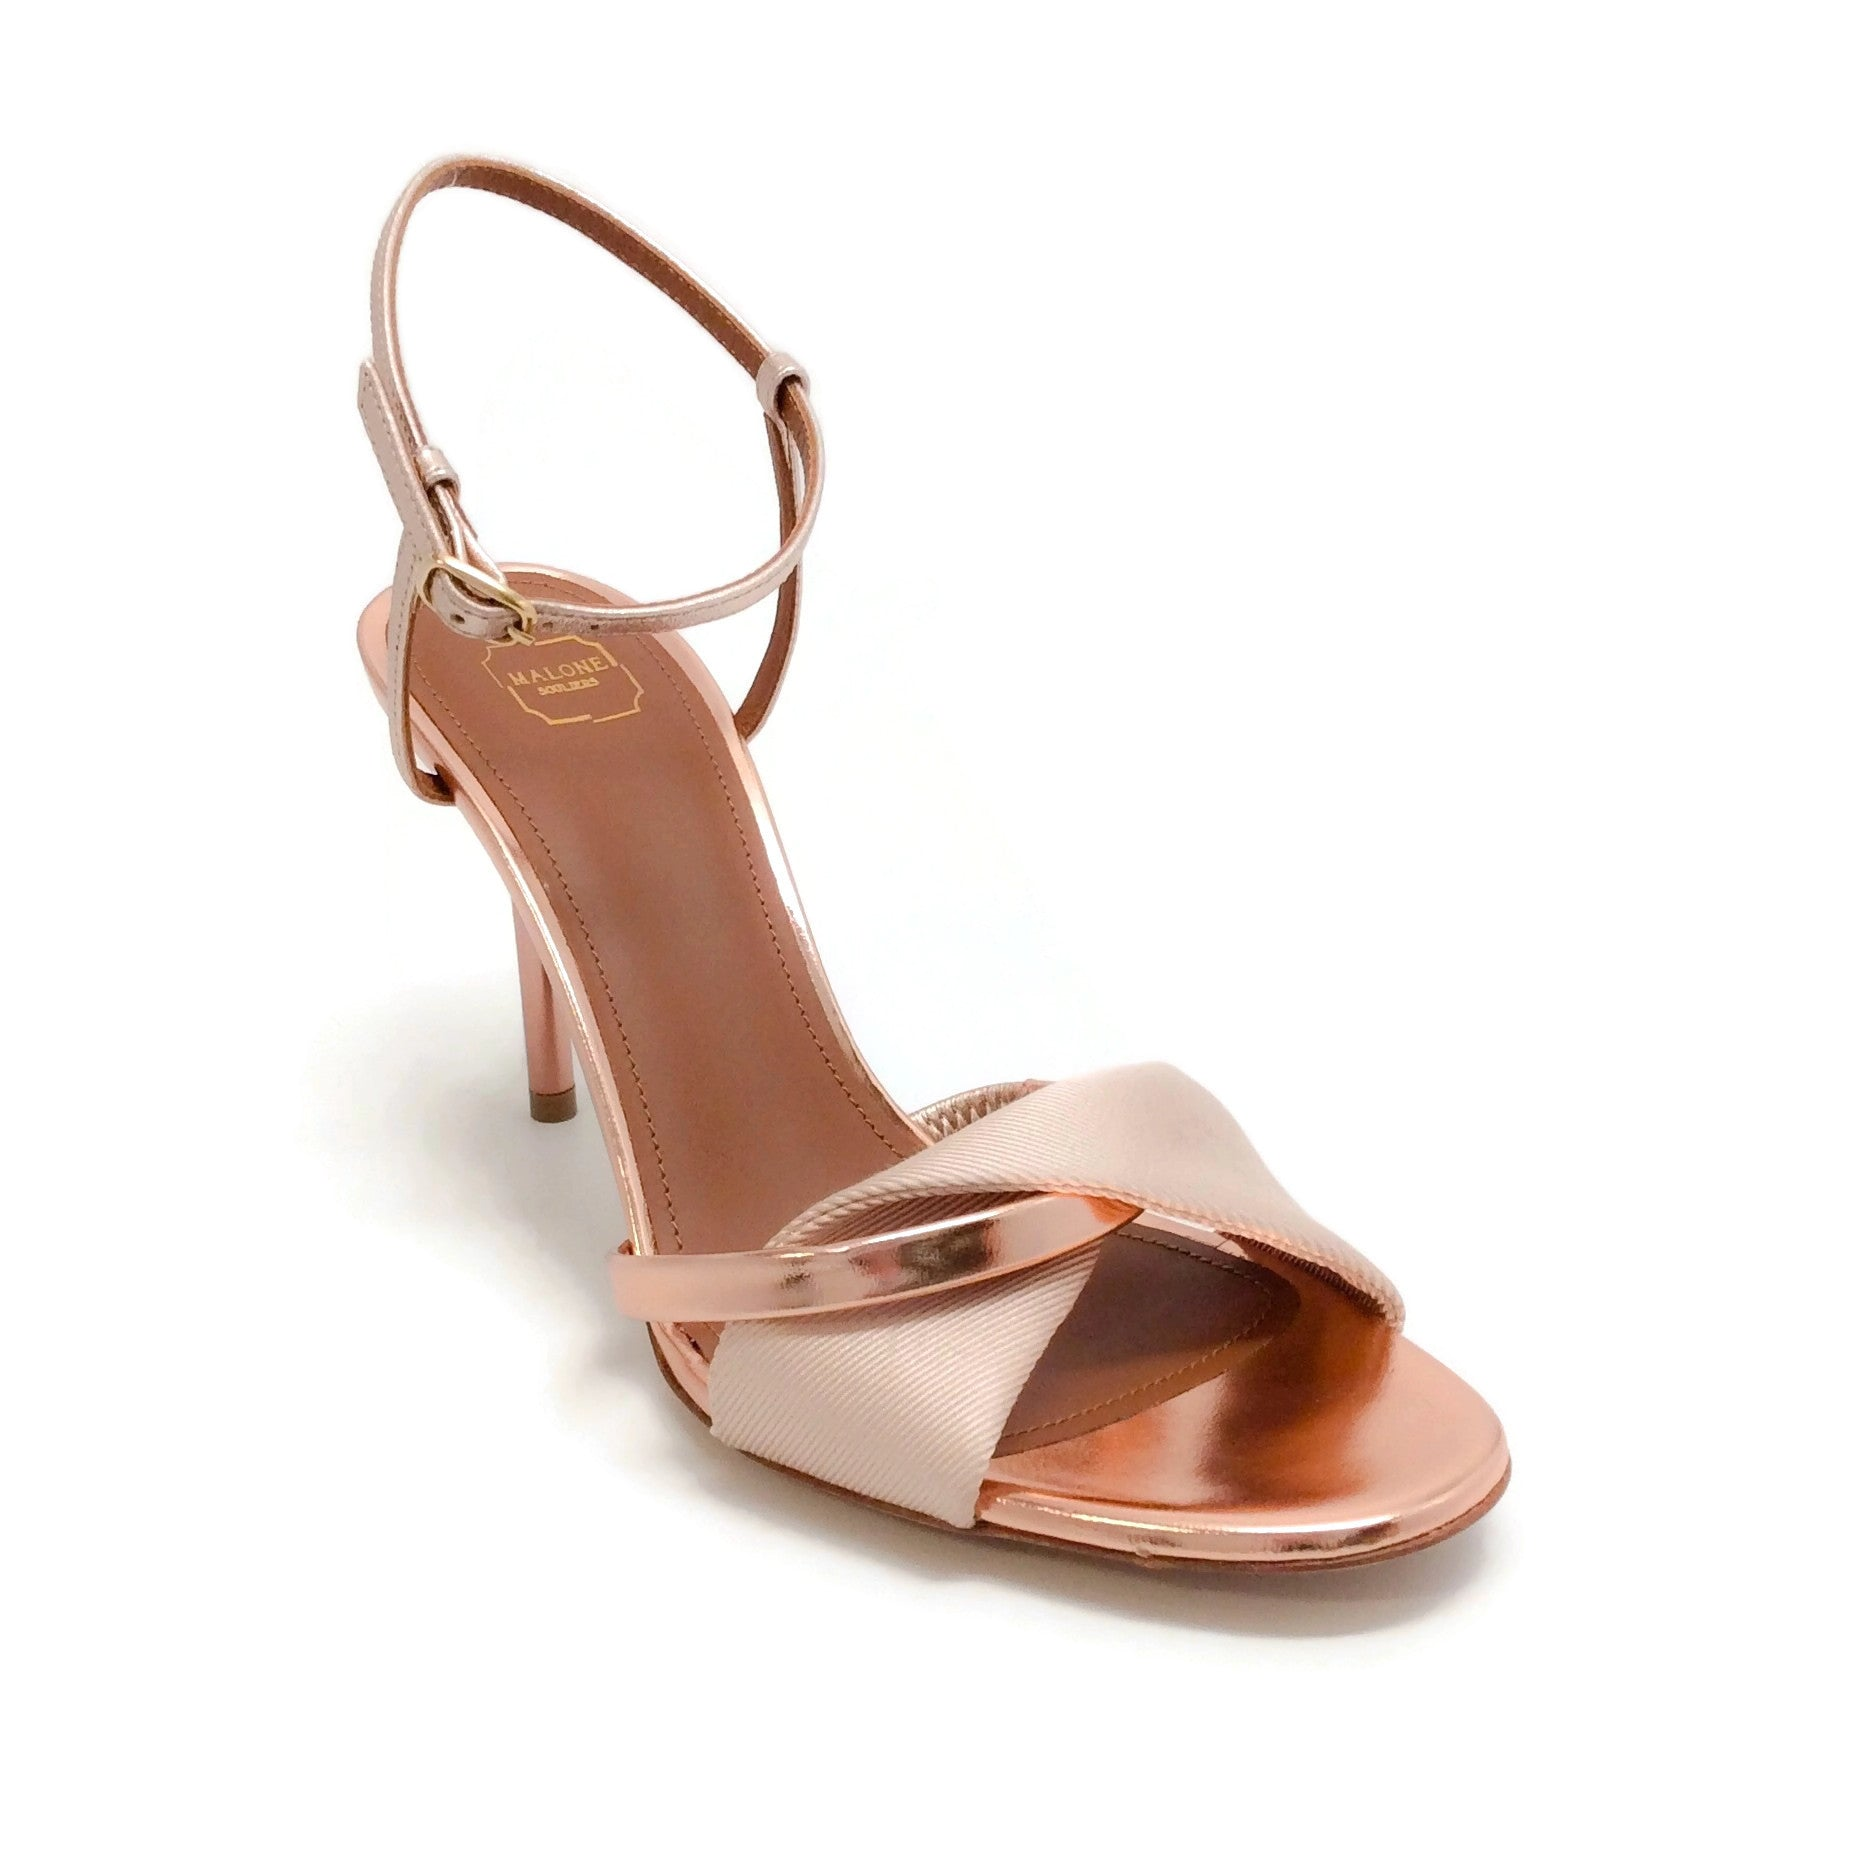 Malone Souliers Nude / Rose Gold Terry Sandals